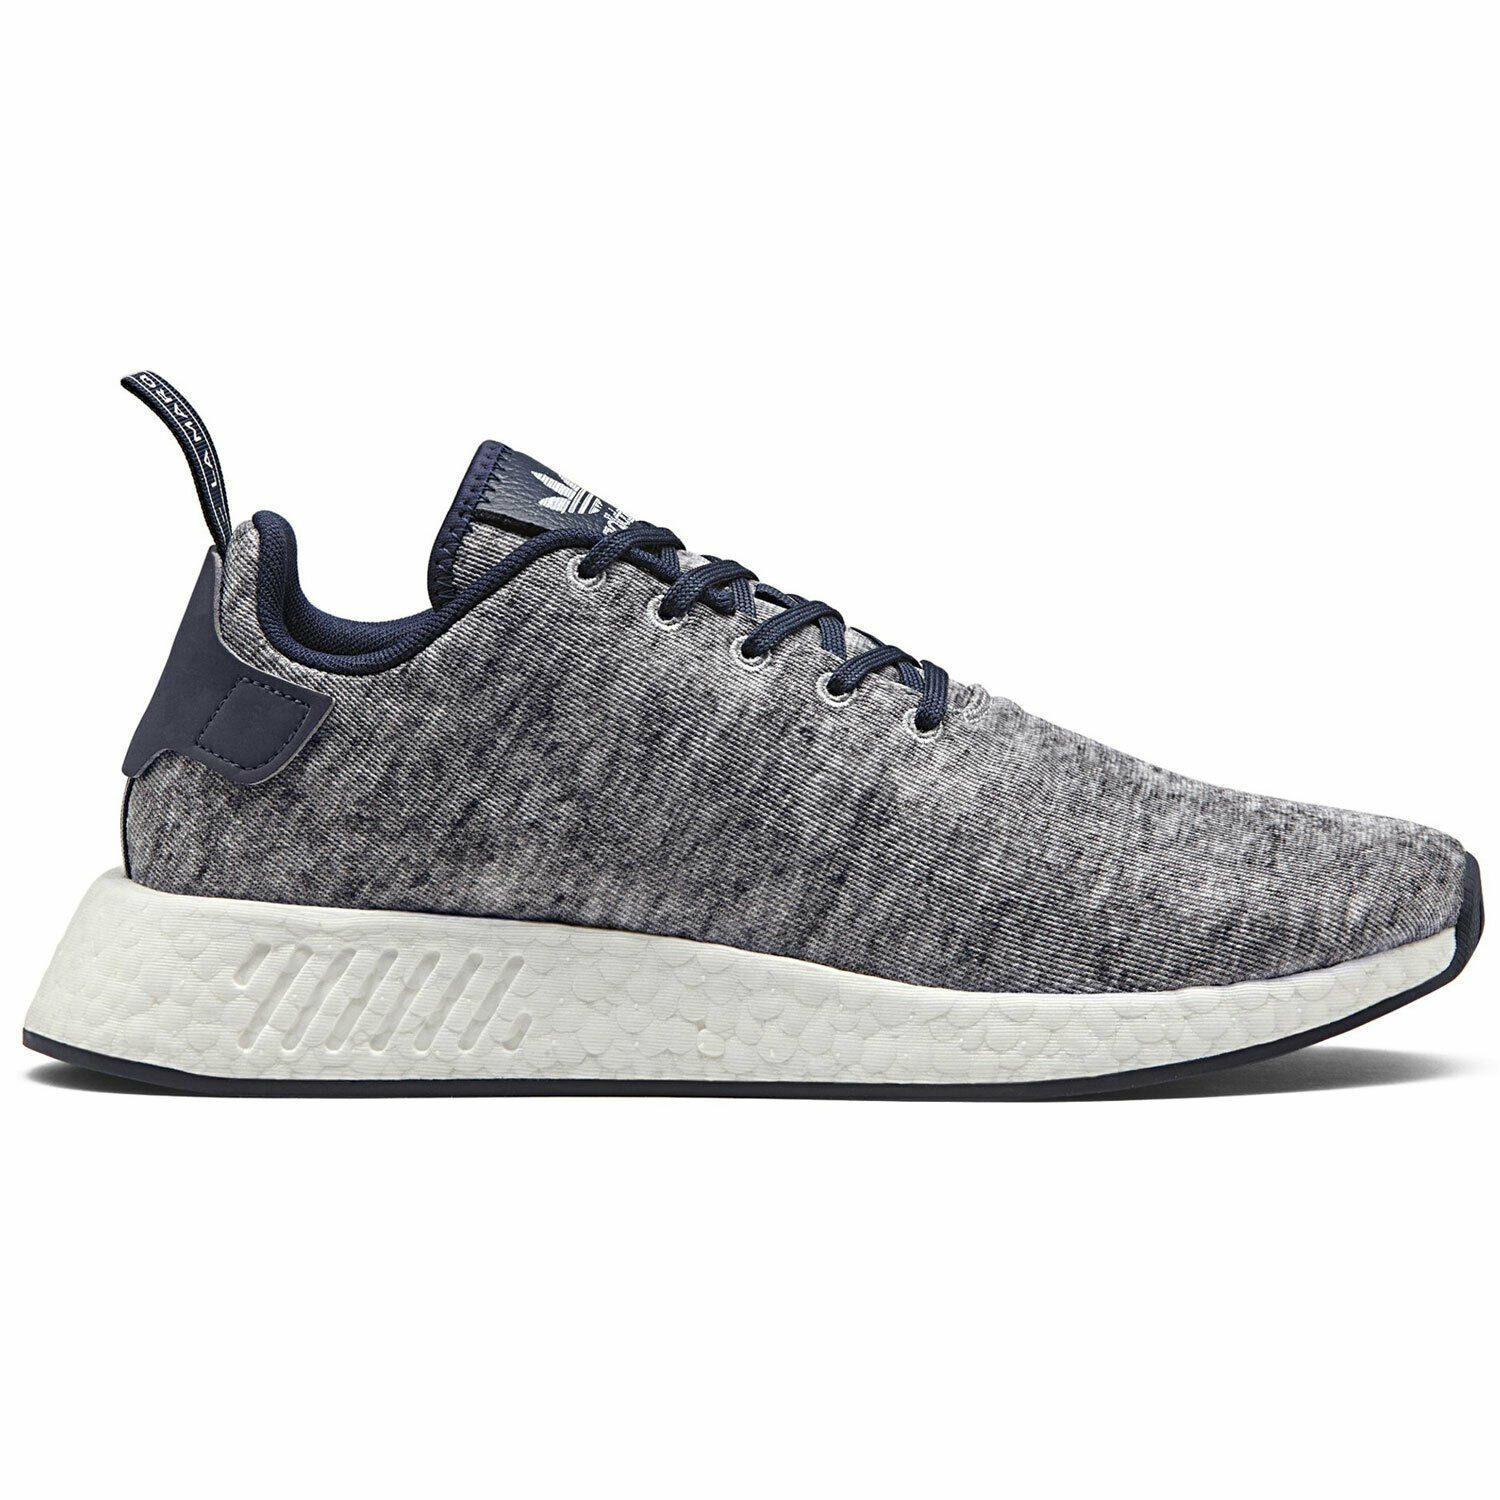 Primary image for Adidas Men's NMD R2 UAS Core Heather/Matte Silver/White DA8834